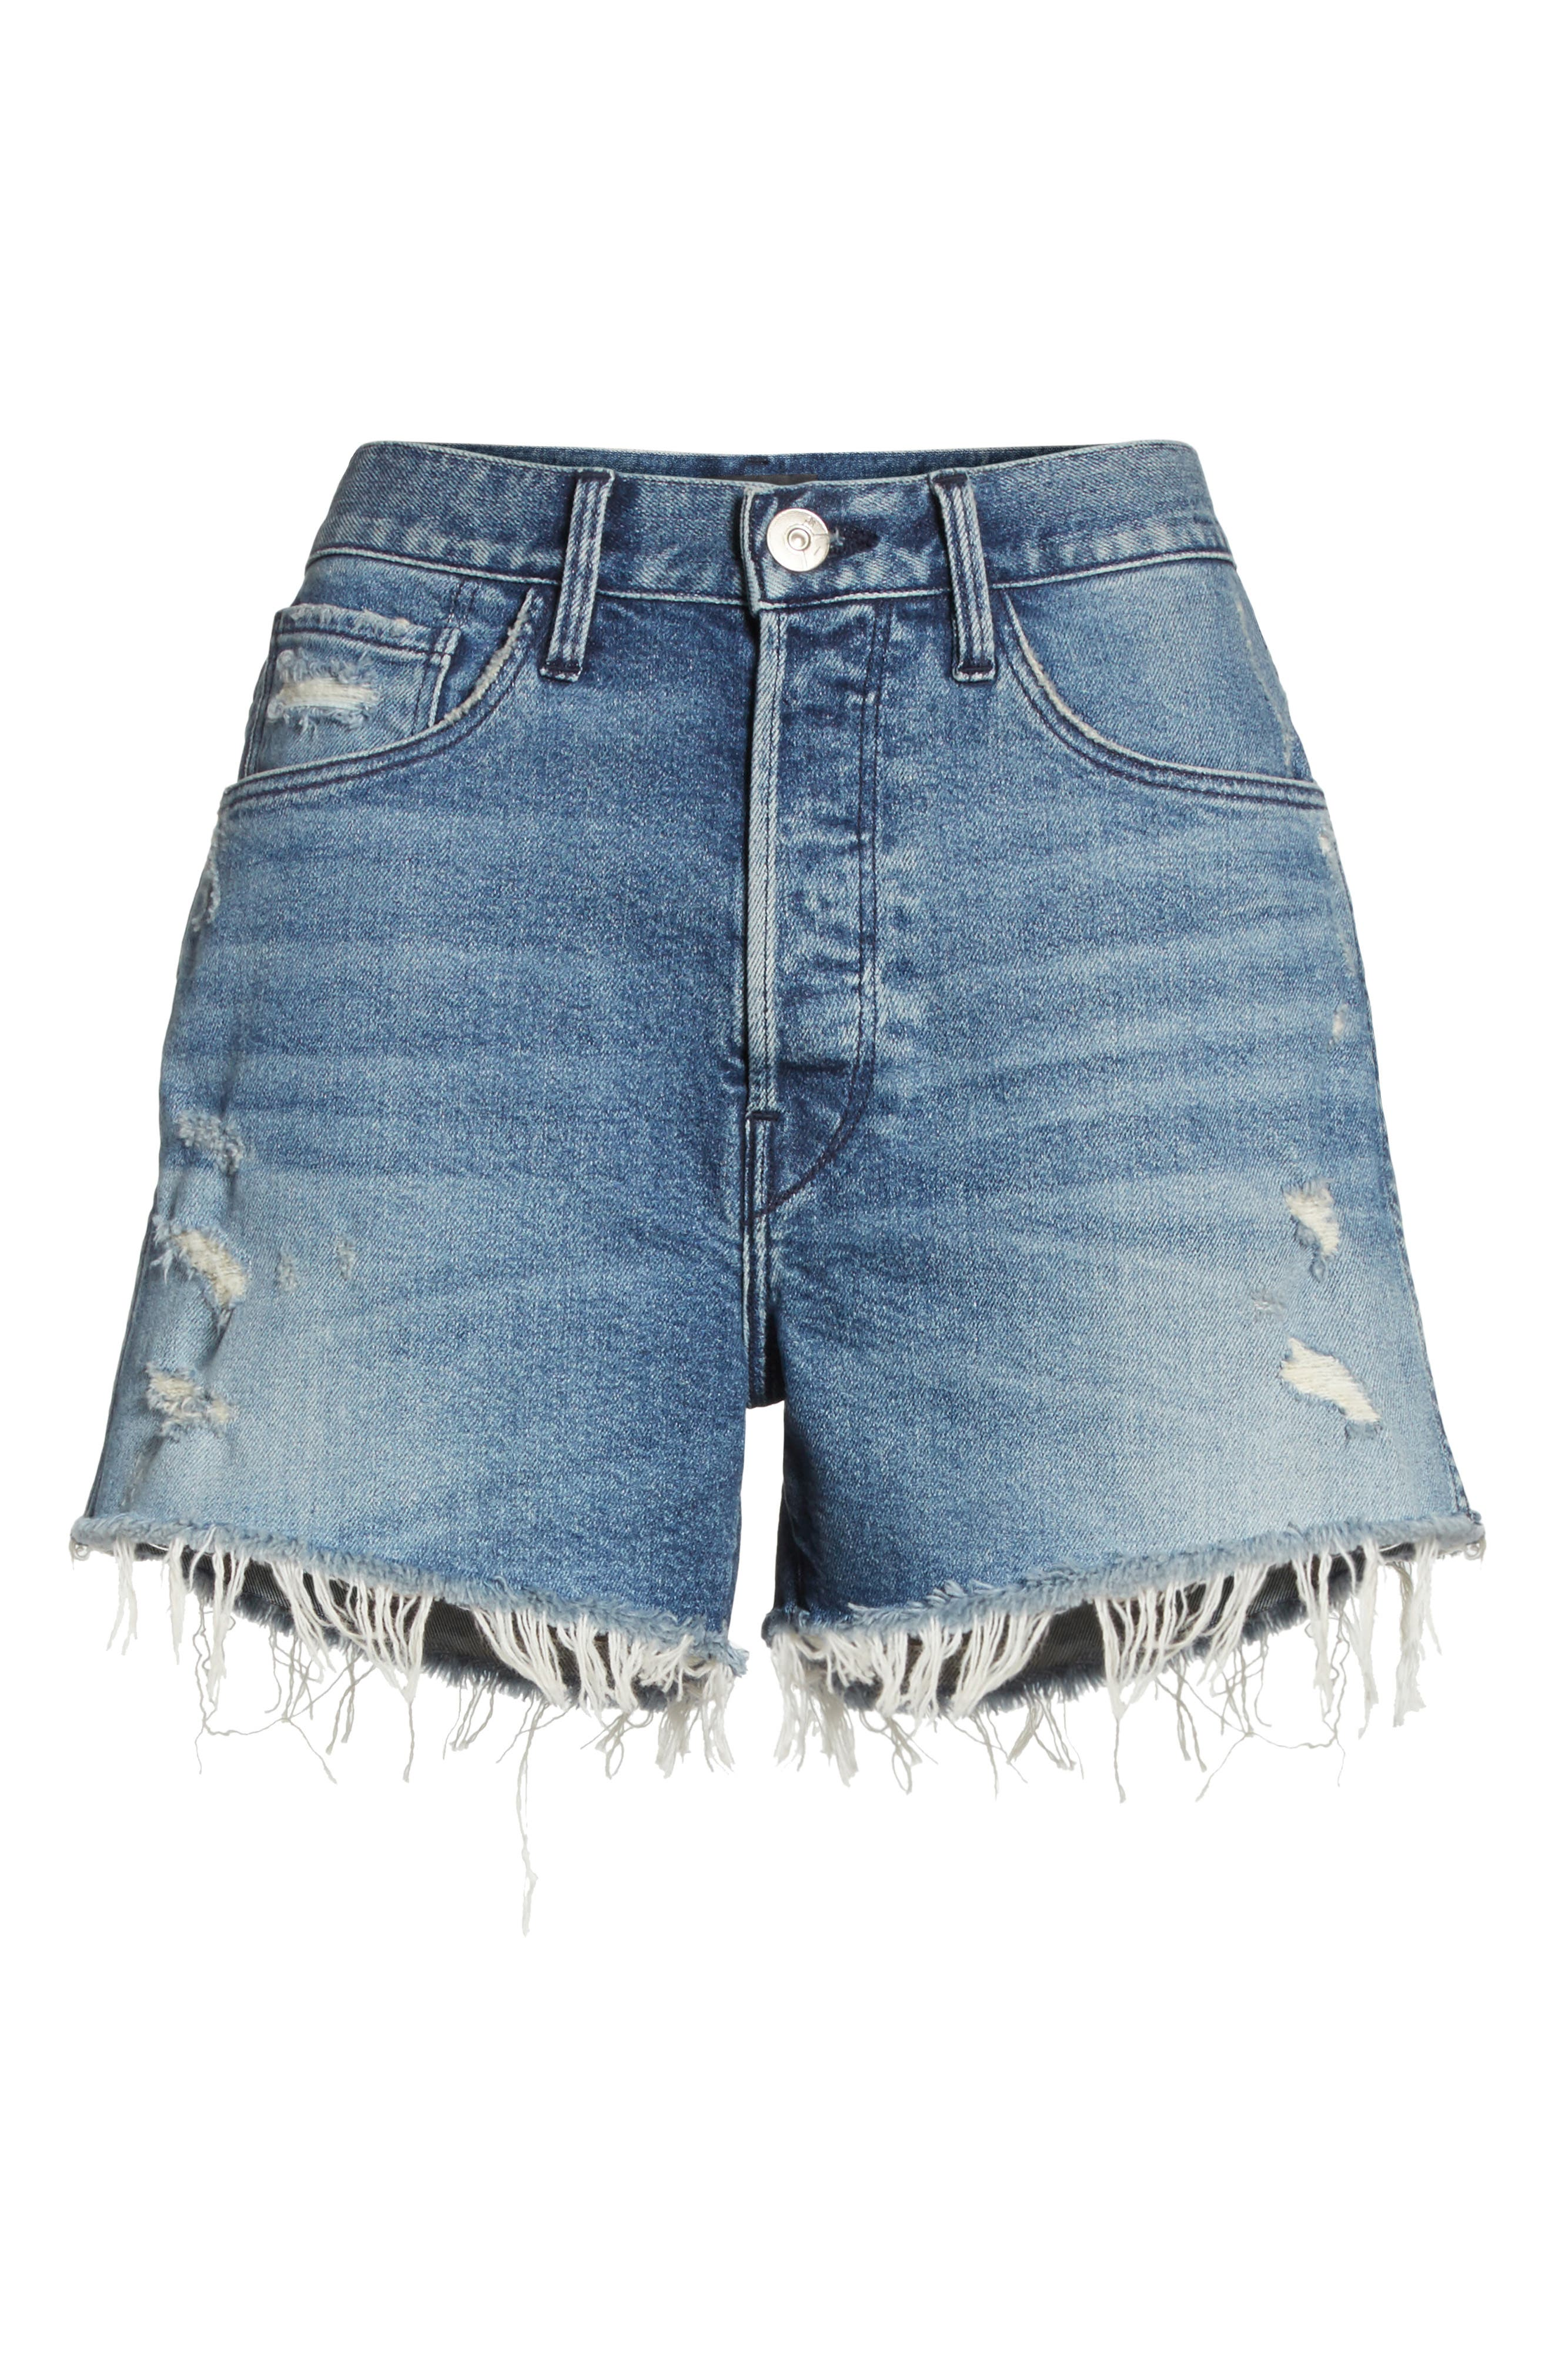 W4 Blake Raw Hem Denim Shorts,                             Alternate thumbnail 7, color,                             CHANCE